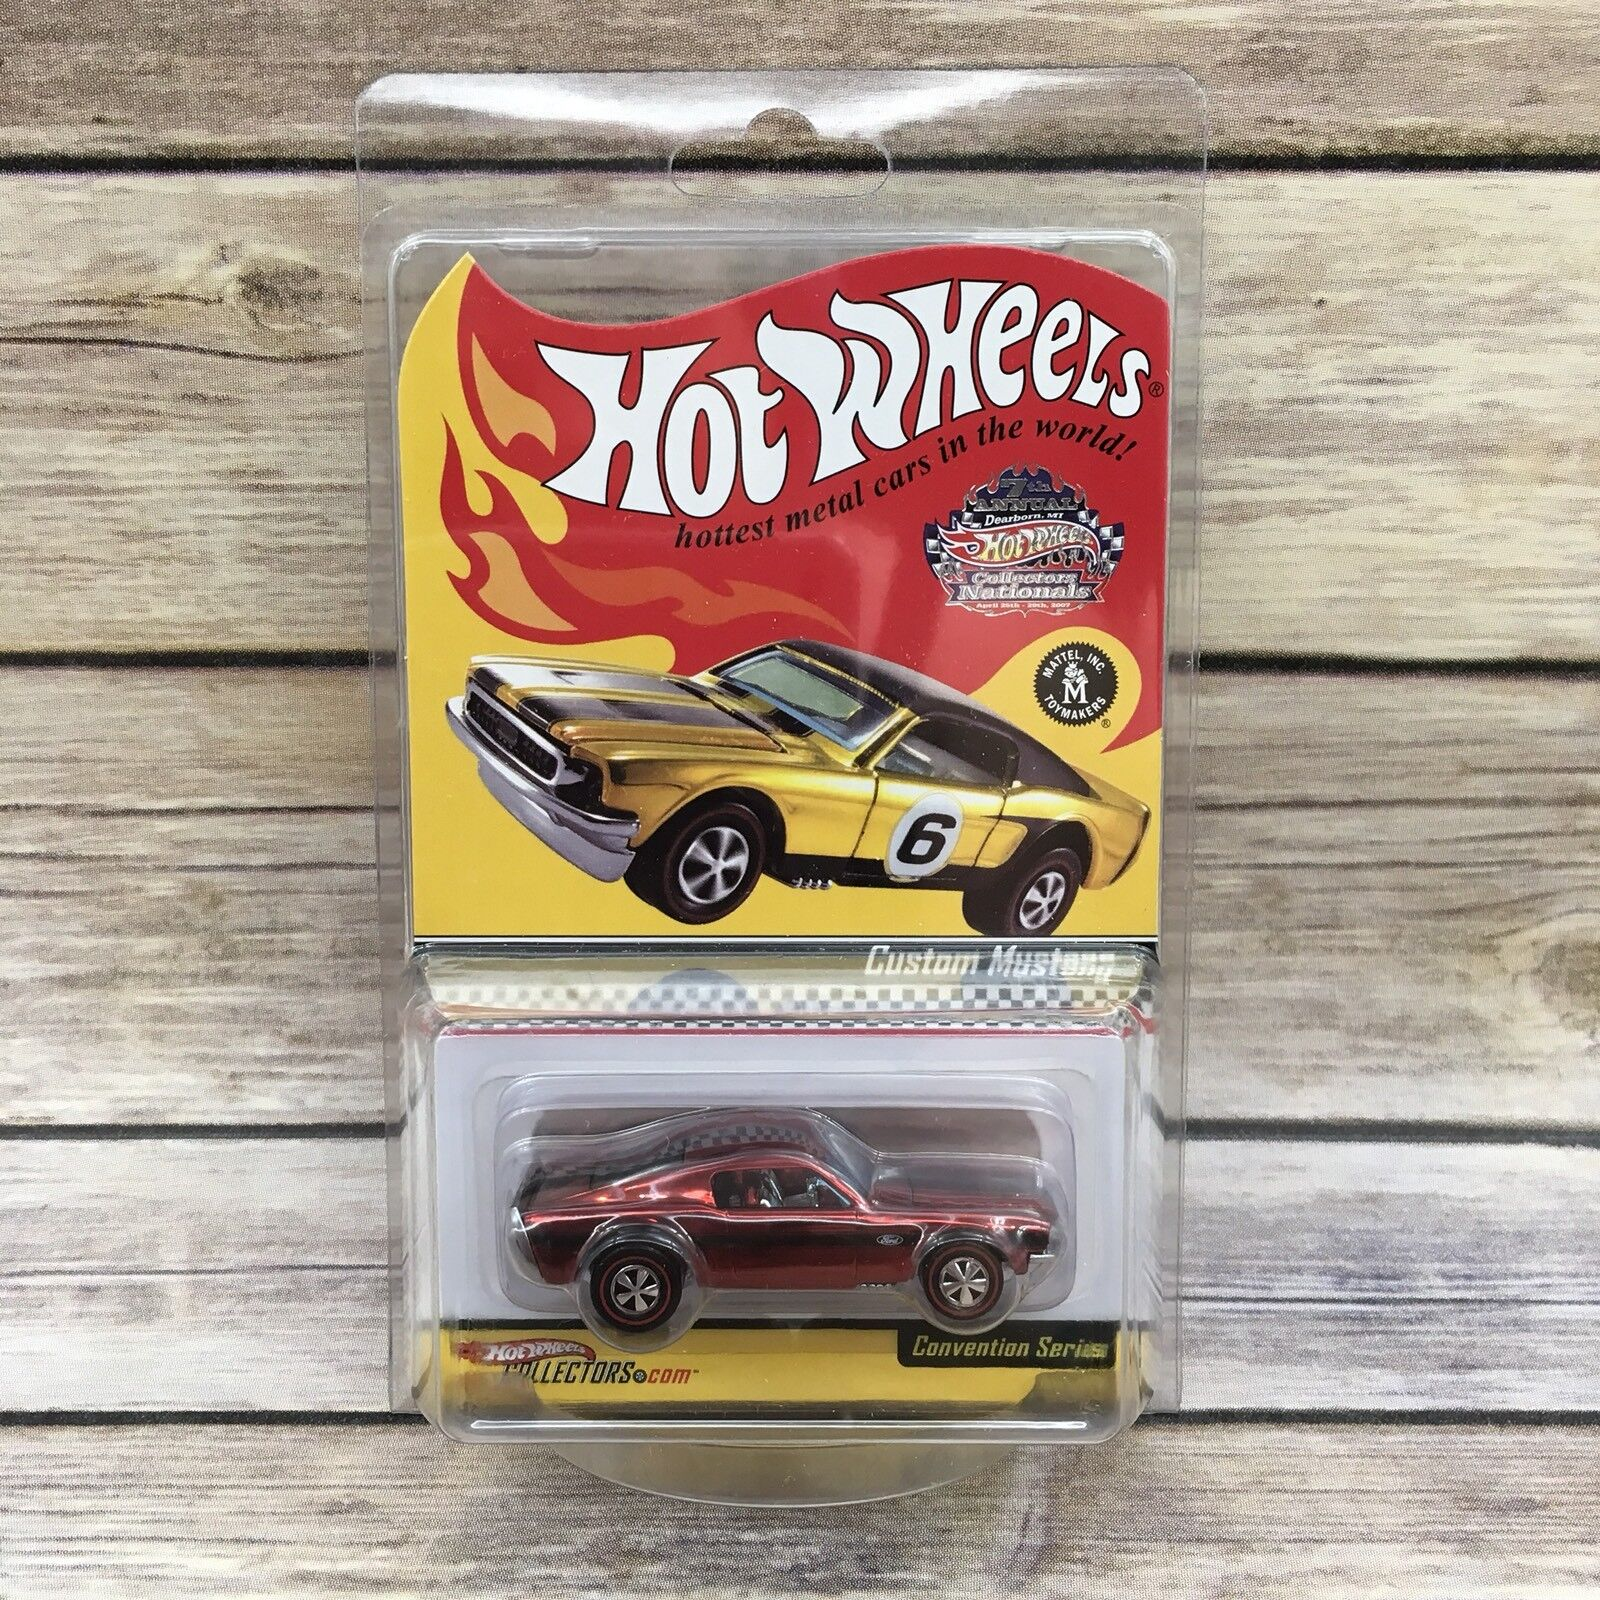 Hot Wheels 2006 Convention Series Custom Mustang Real Riders limited 07221 10000